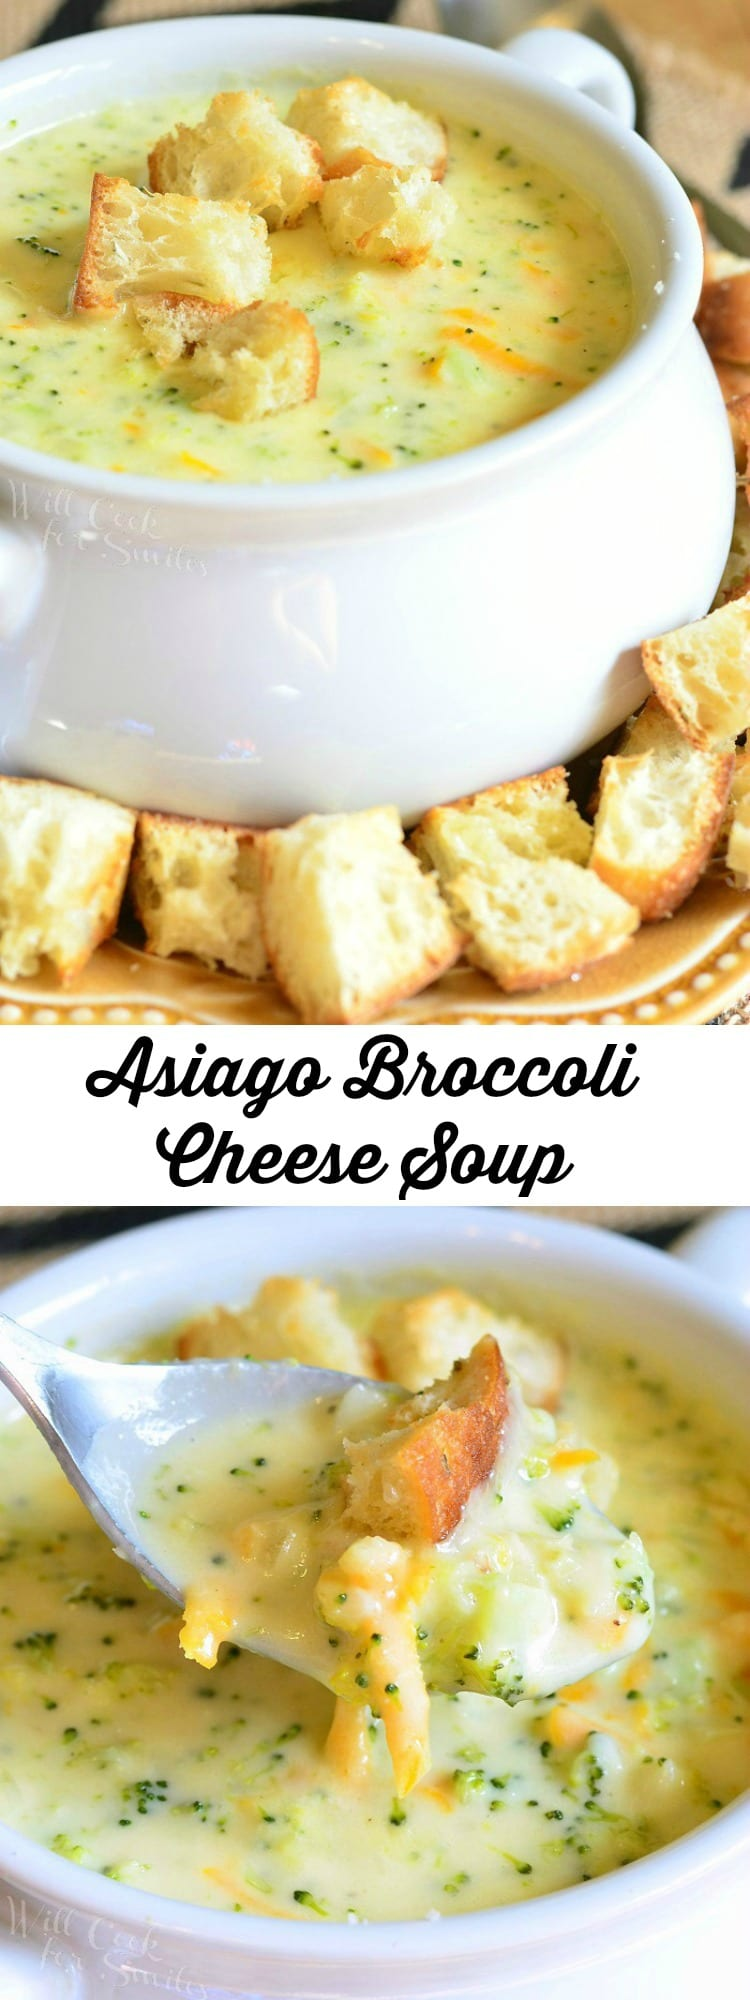 Asiago Broccoli Cheese Soup in a white soup bowl with cut up pieces of crusty bread on top and around the bottom of the bowl collage